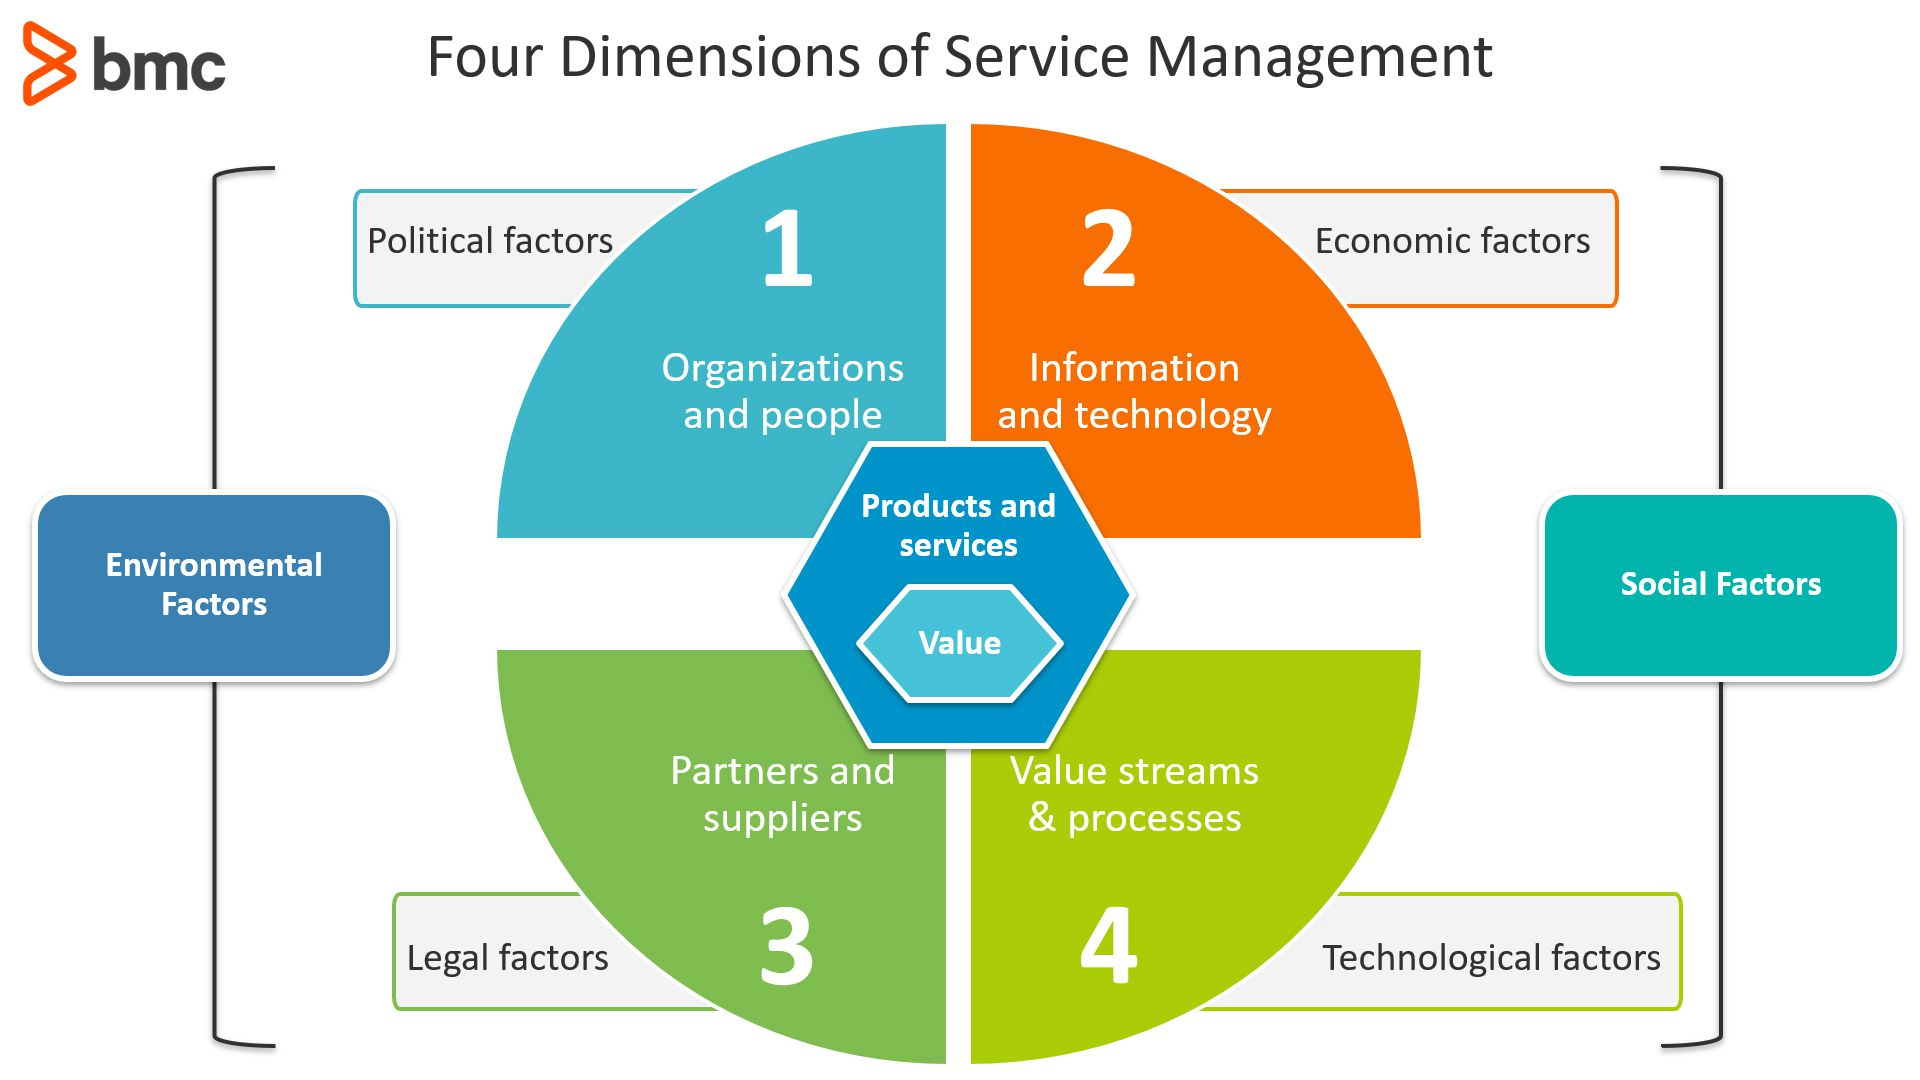 Four Dimensions of Service Management